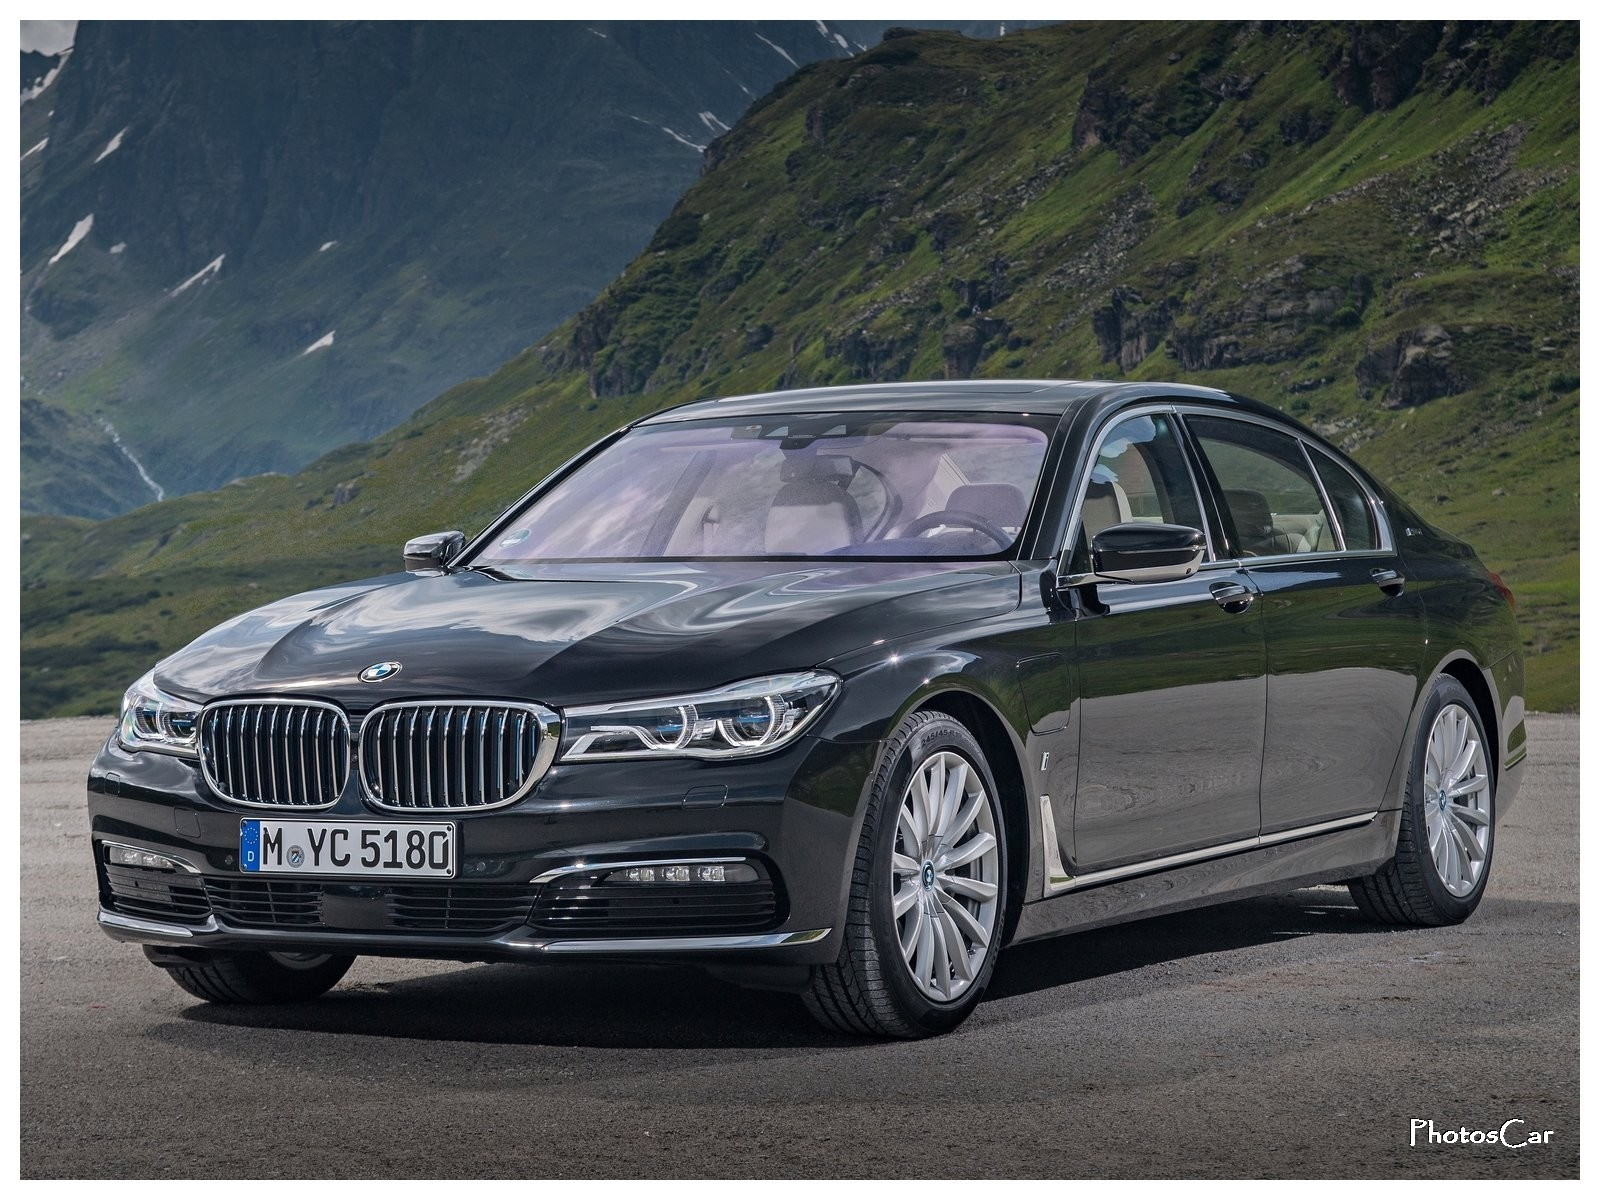 2017 BMW 740Le xDrive iPerformance